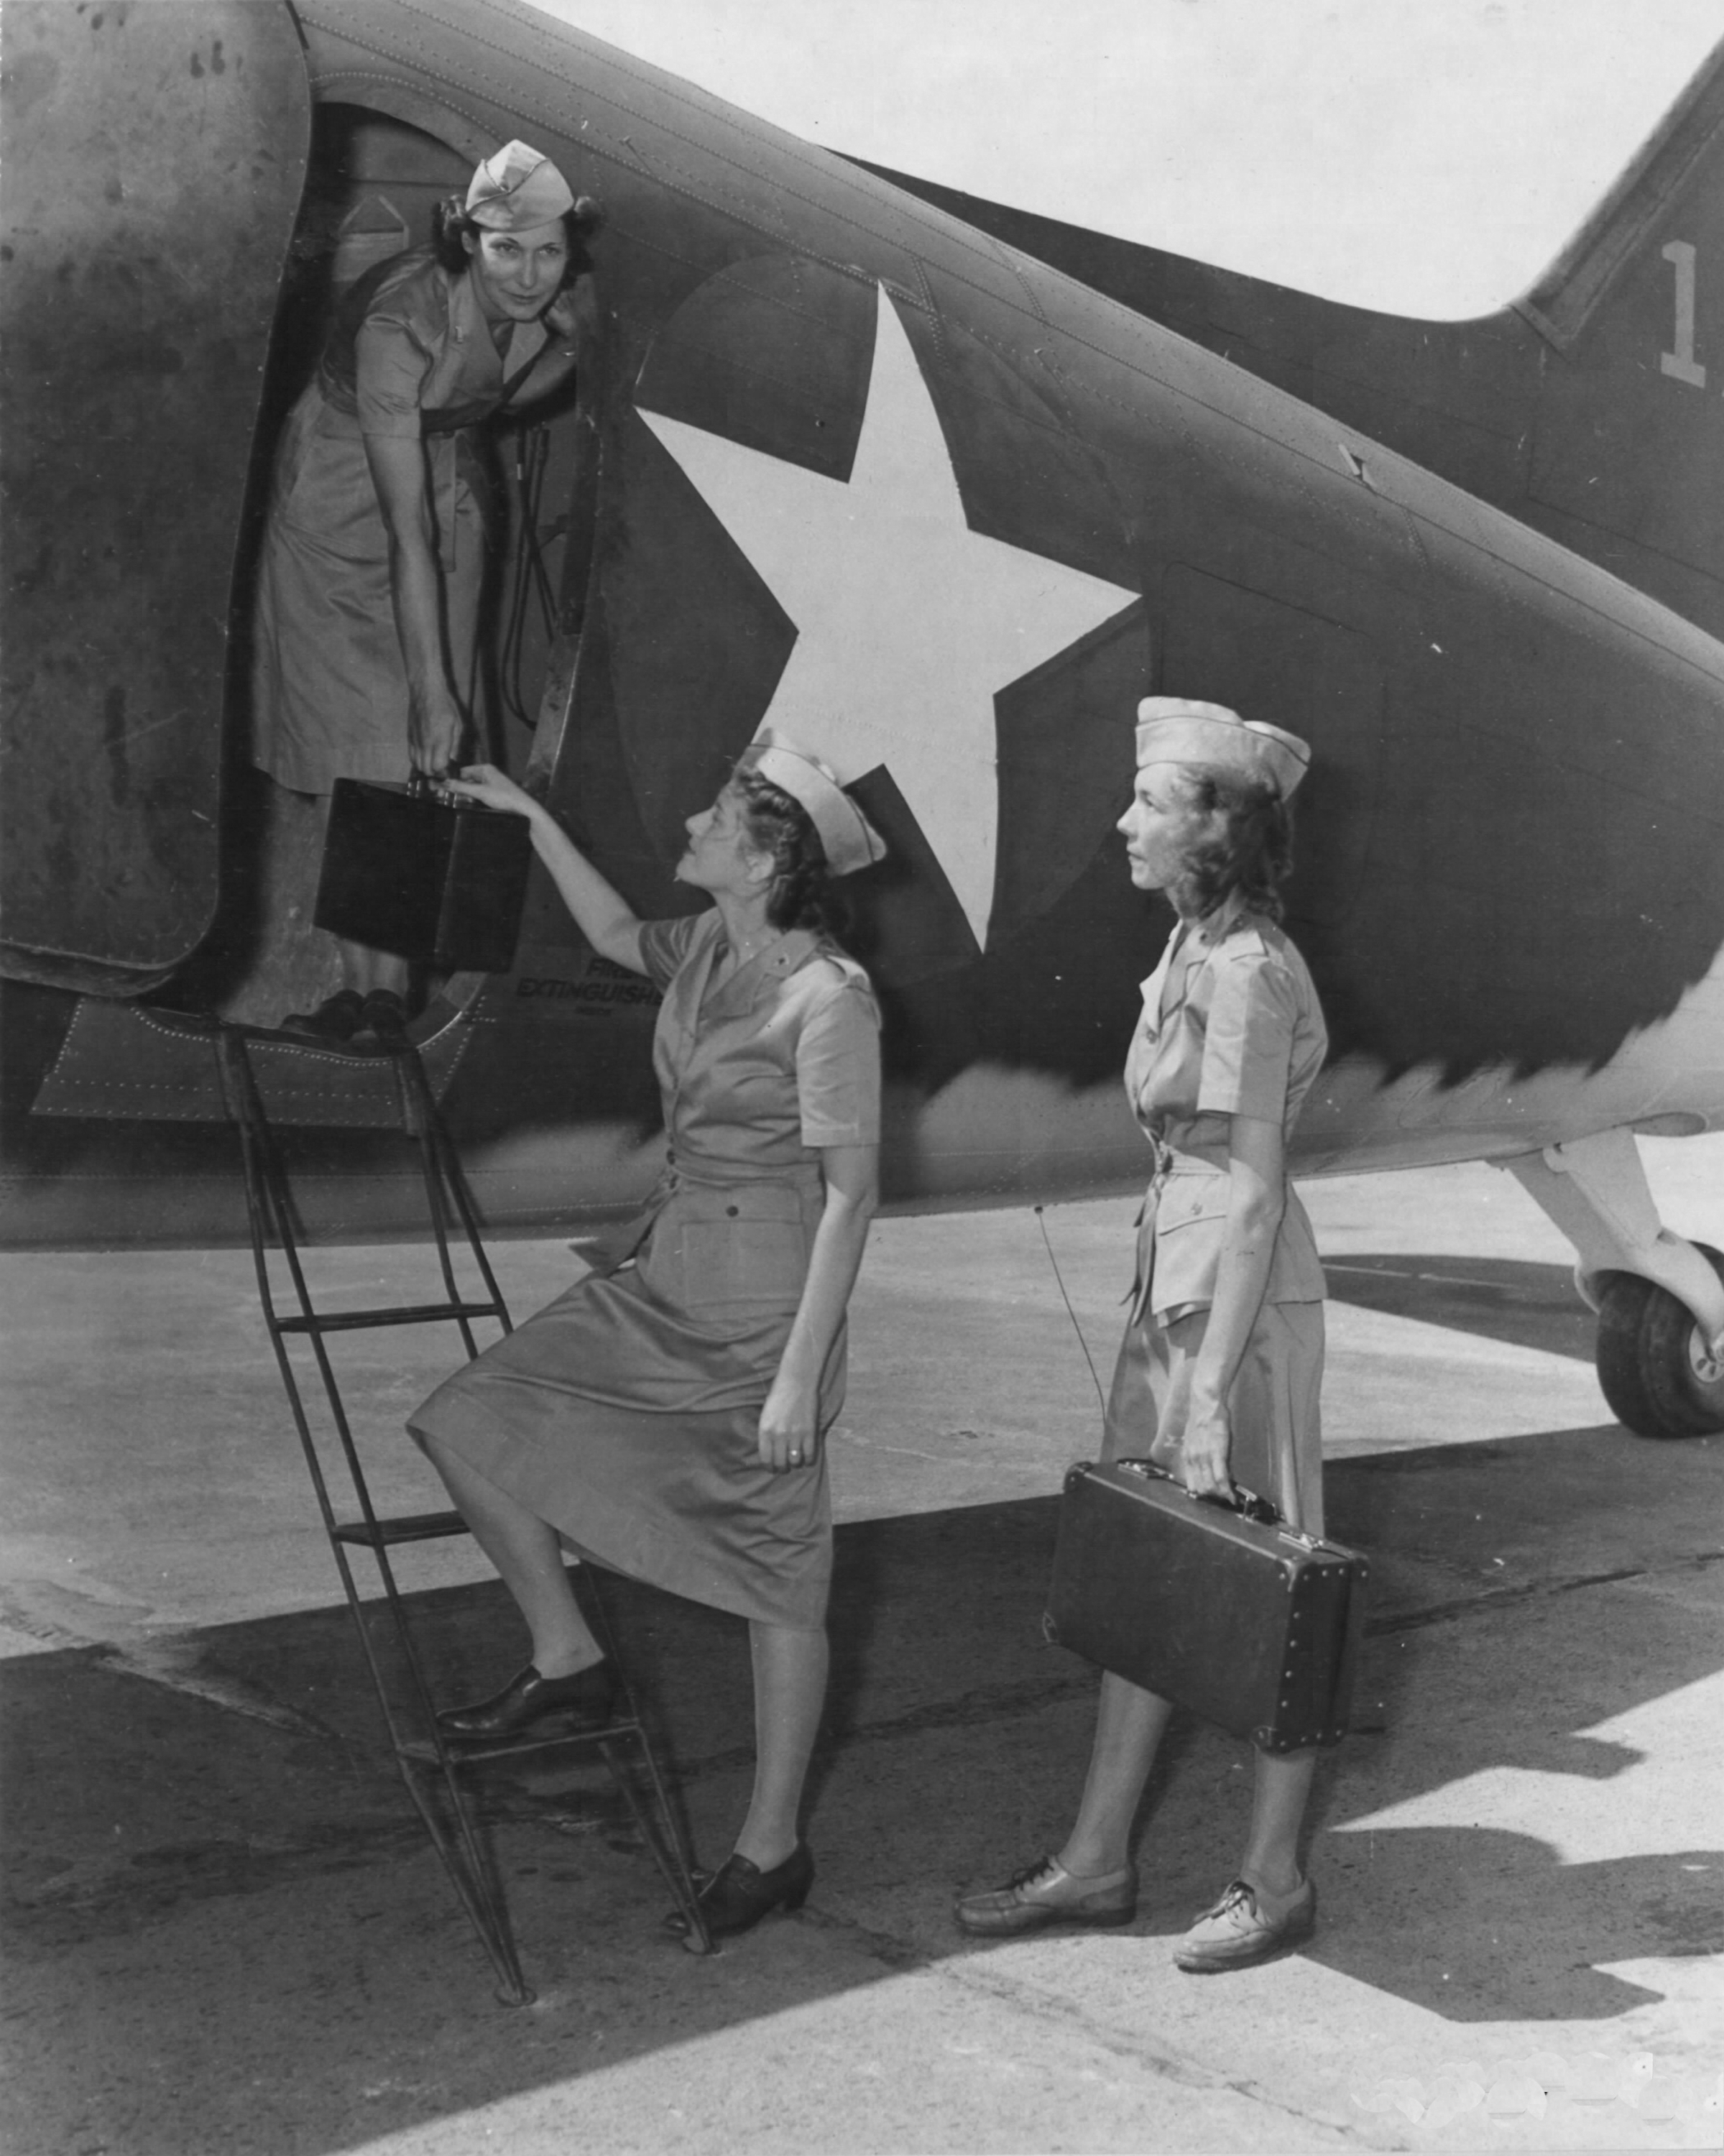 Army Flight Nurses Boarding Transport Plane